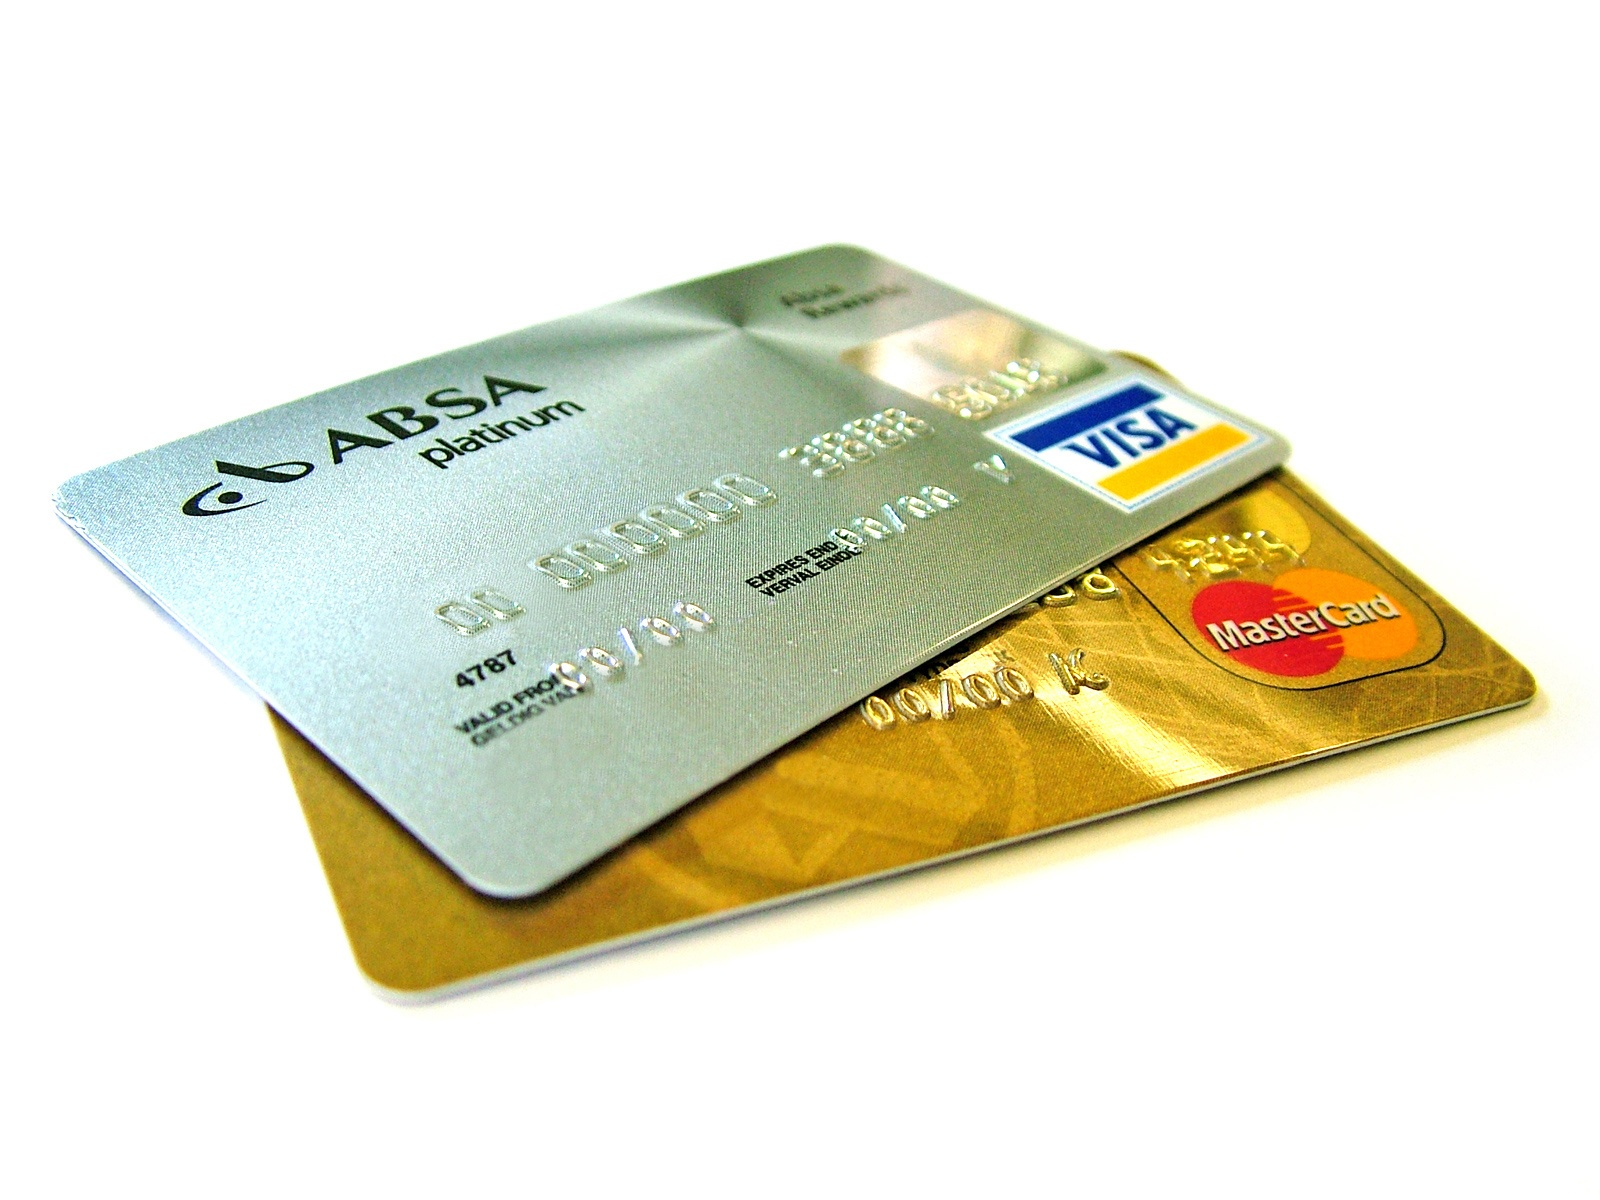 Costa Rica: Credit Cards Charge Up to 54% - CentralAmericaData ...